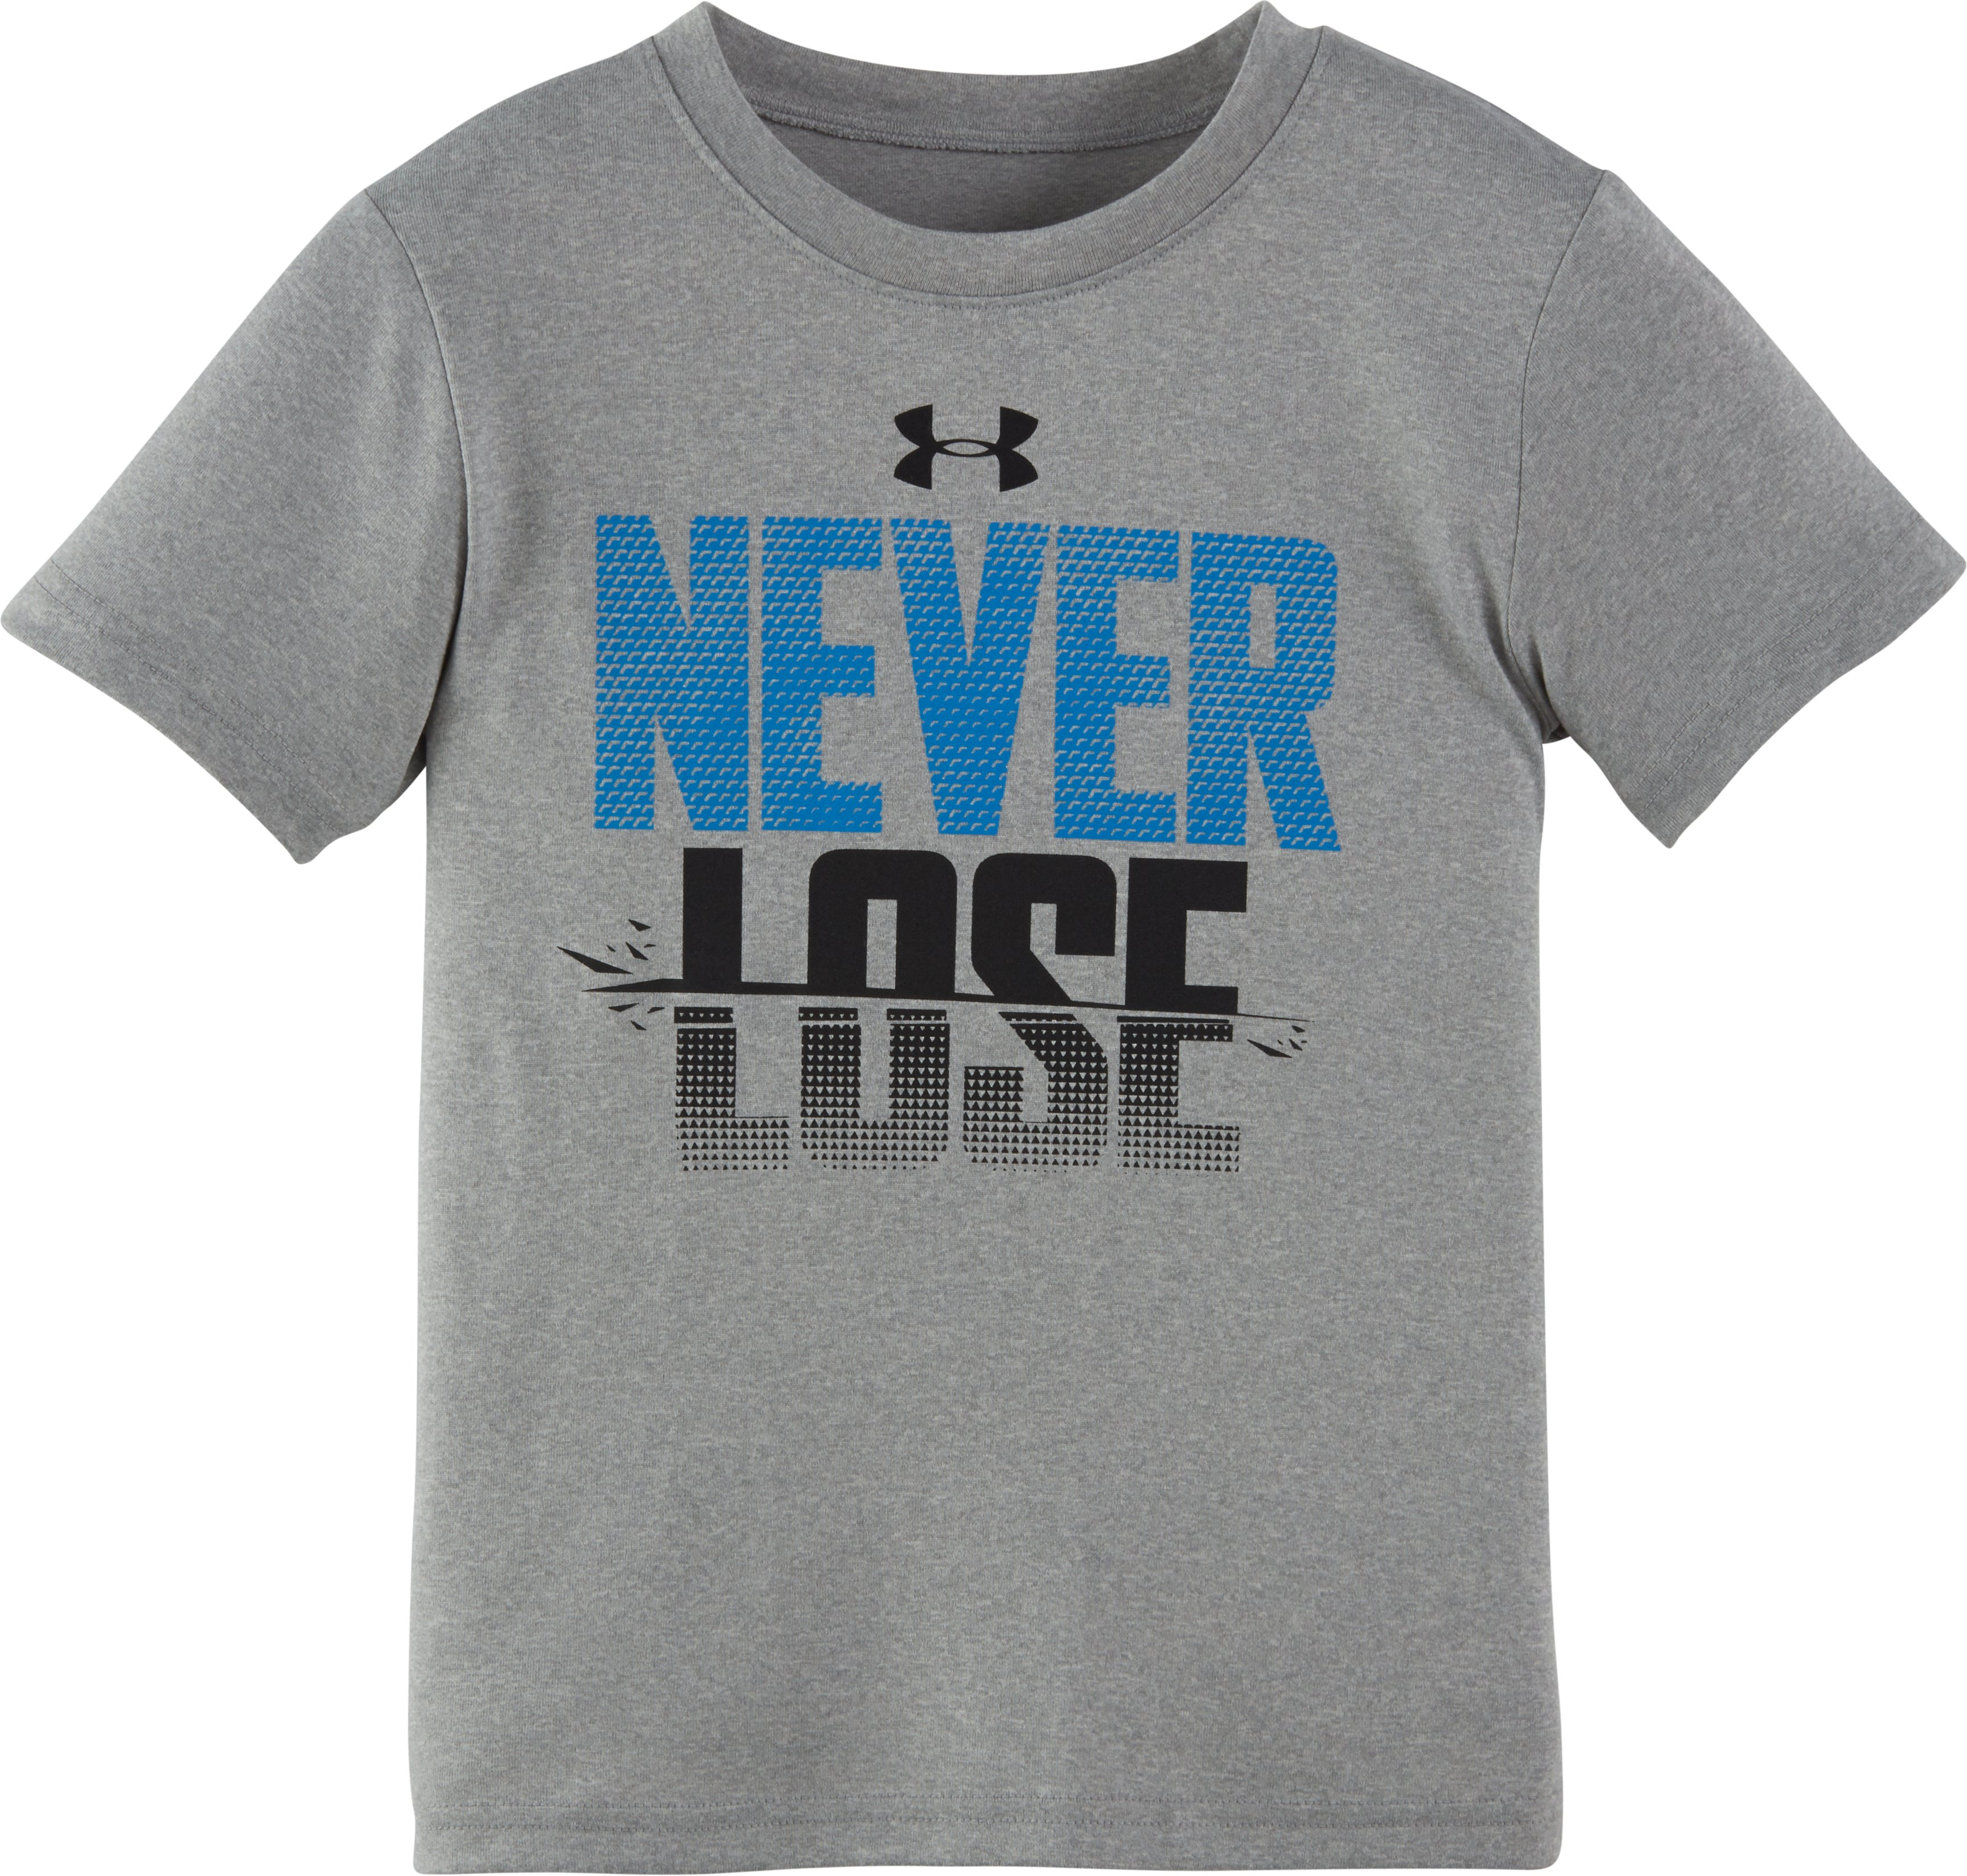 Boys' Infant UA Never Lose Short Sleeve T-Shirt, True Gray Heather, zoomed image